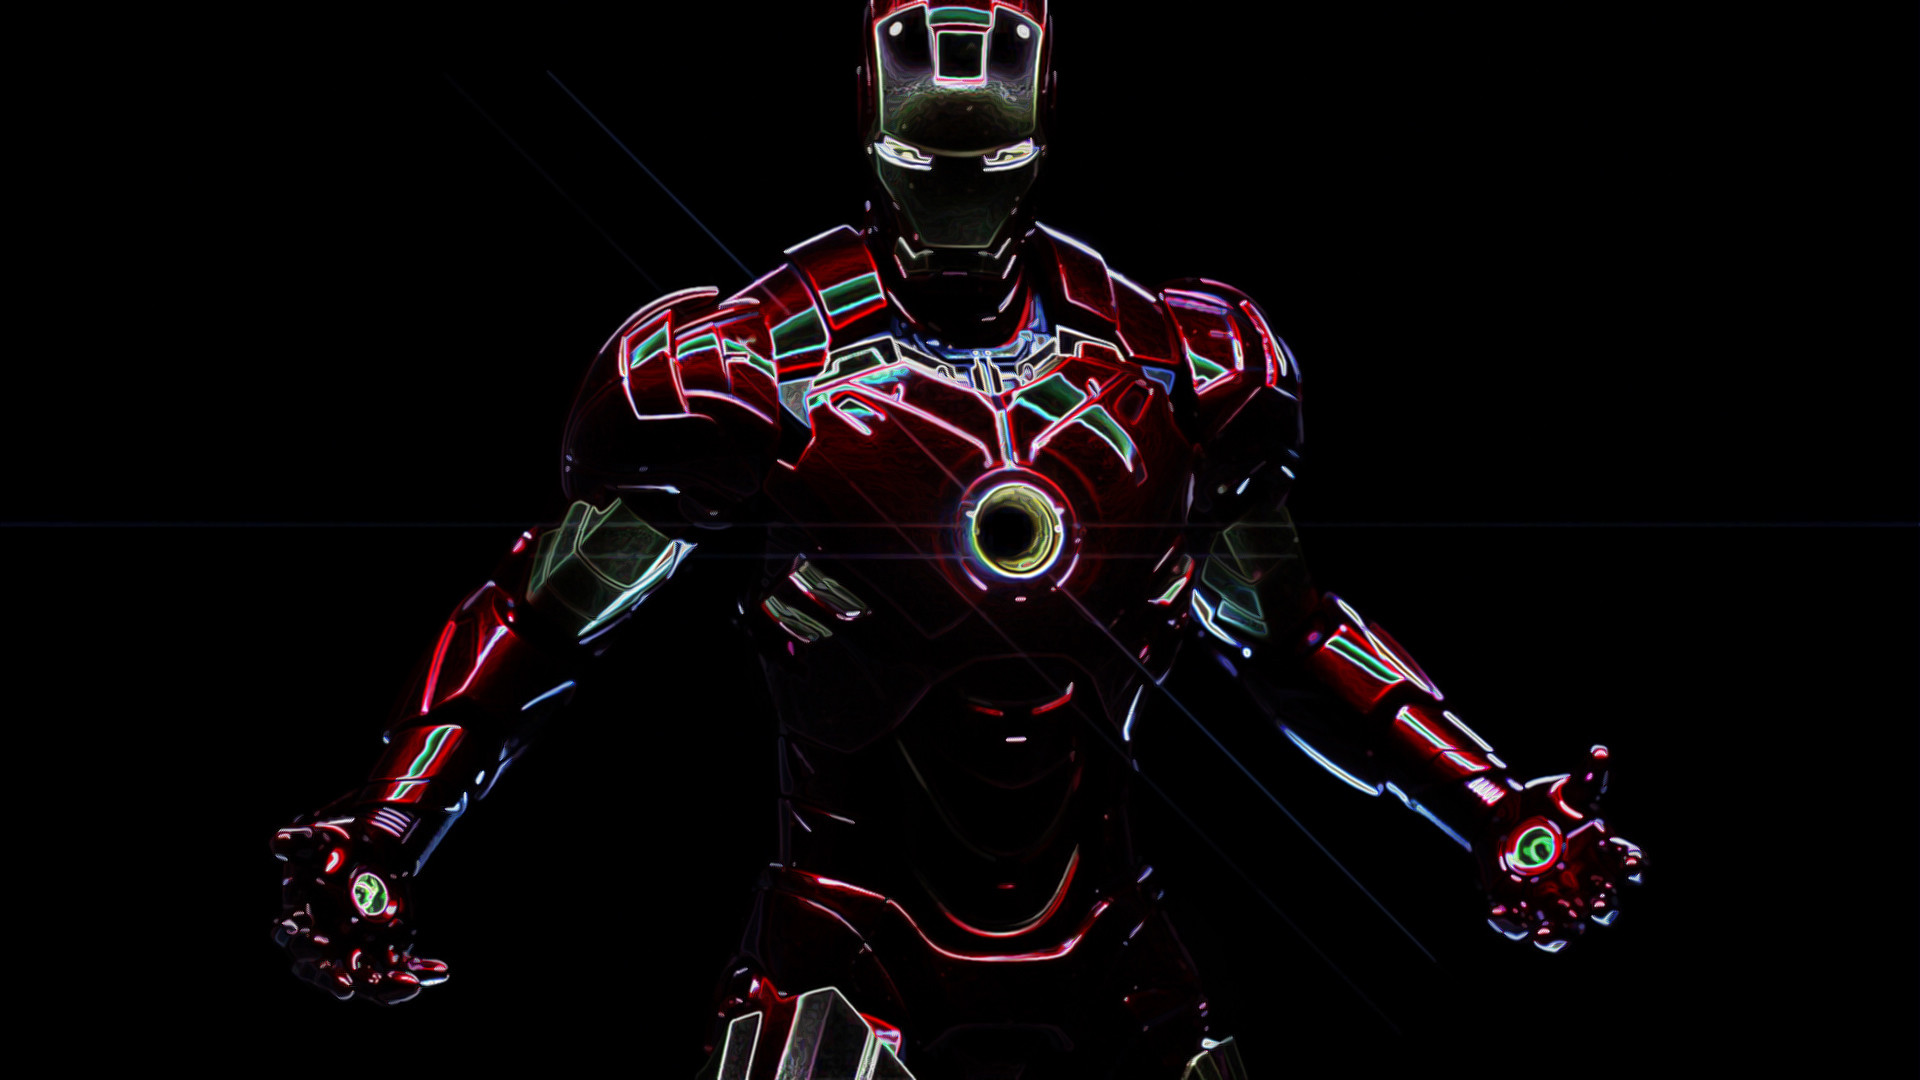 Iron Man Jarvis Wallpaper Hd 72 Images